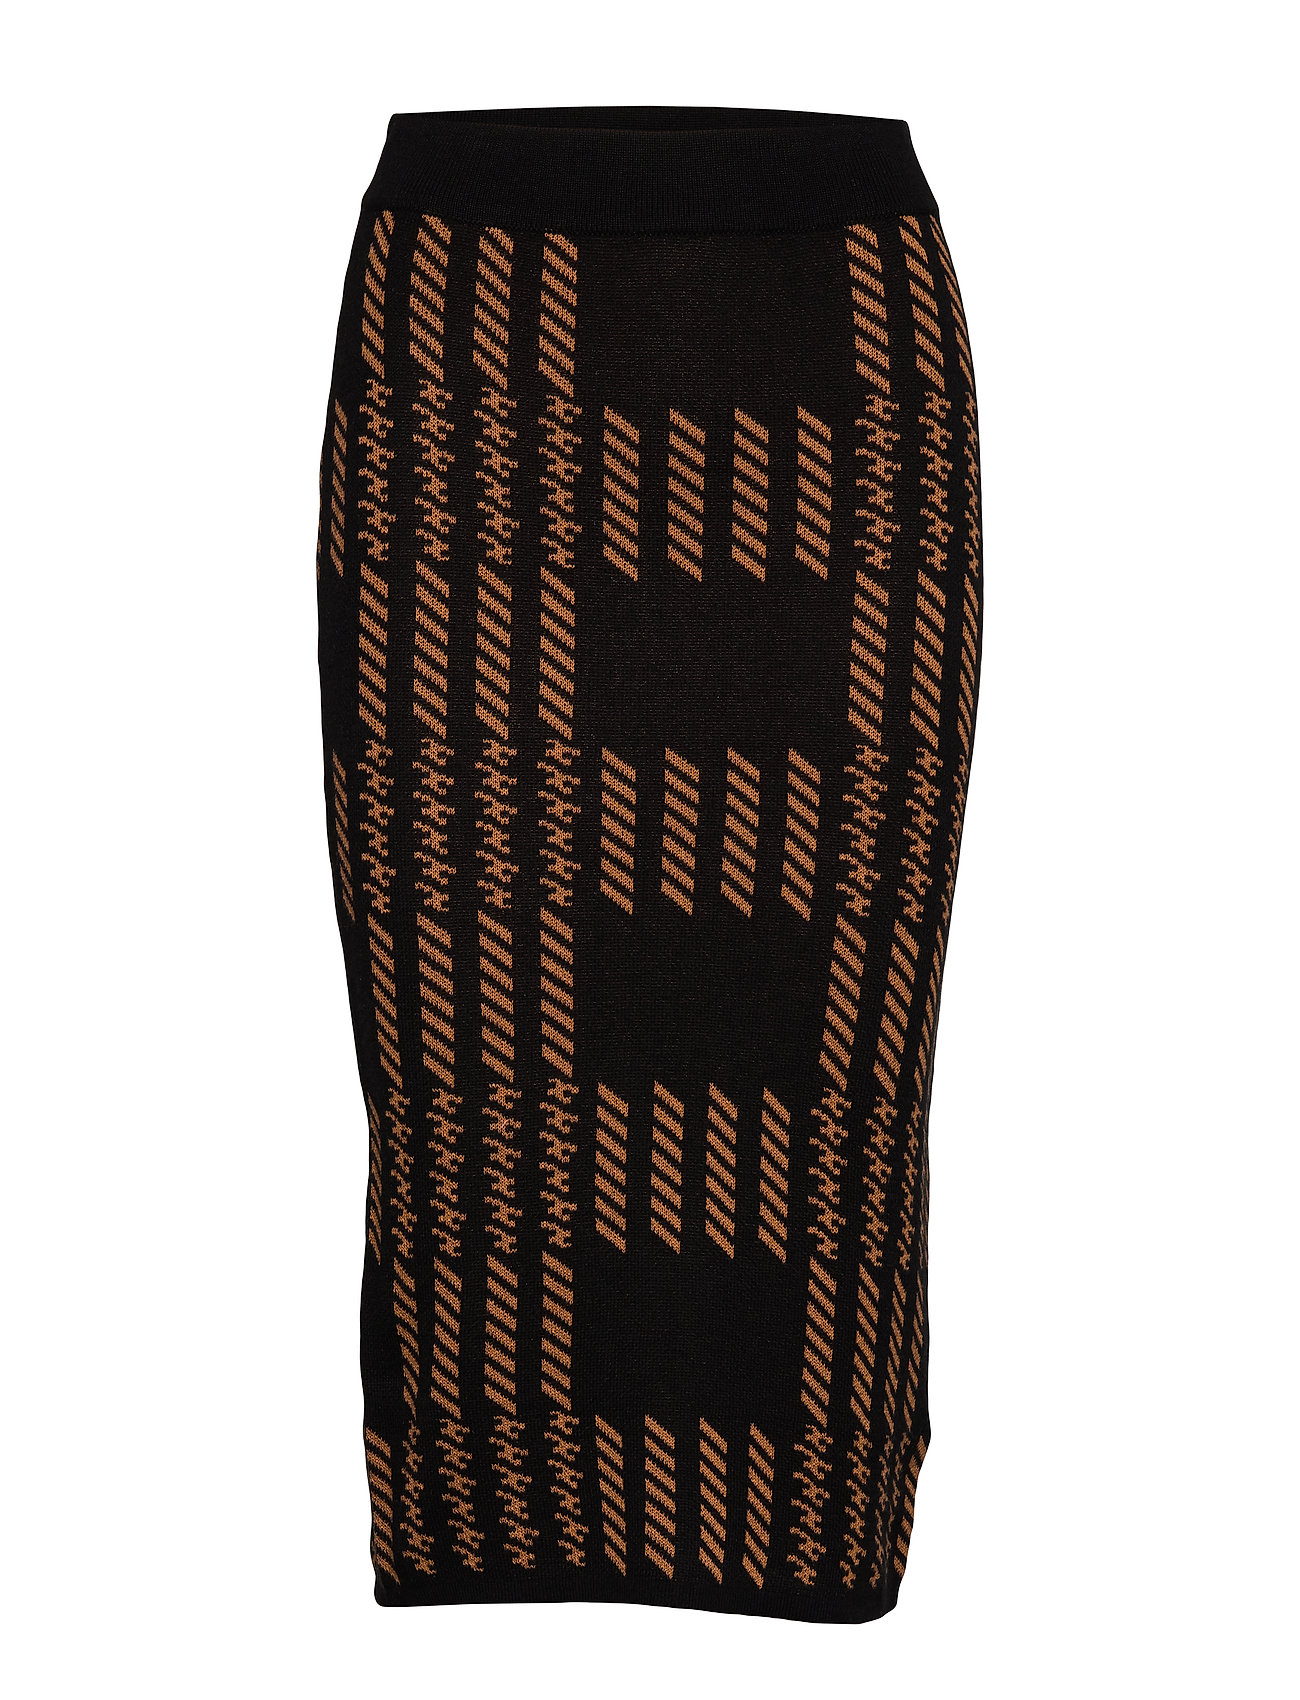 Gina Tricot Natalie knitted skirt - BLACK/BROWN